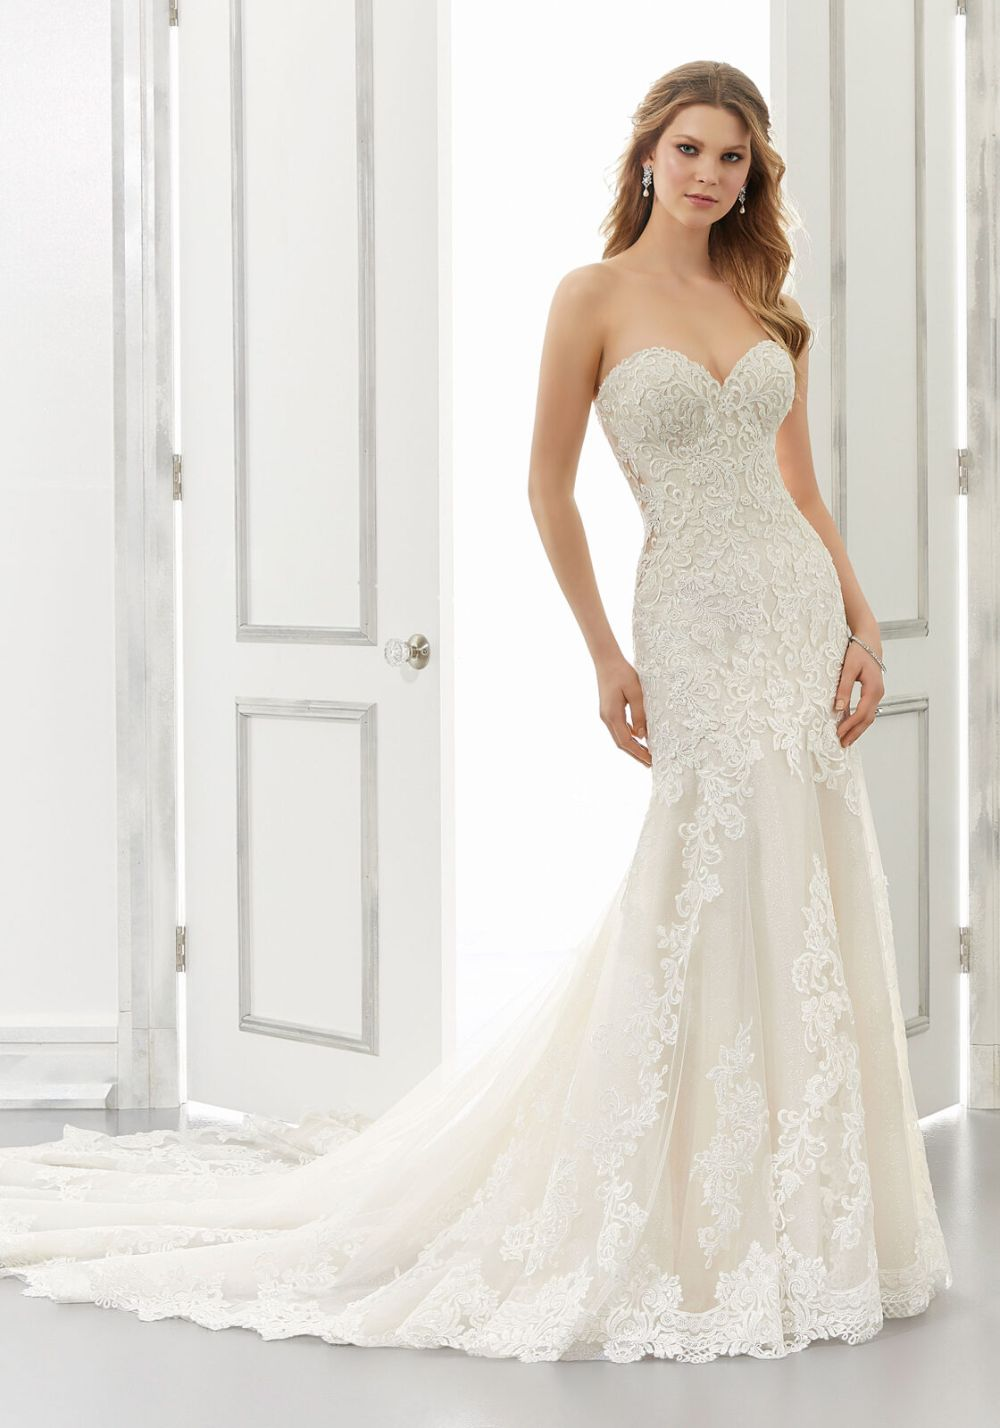 Allison 2188 by Mori Lee by Madeline Gardner